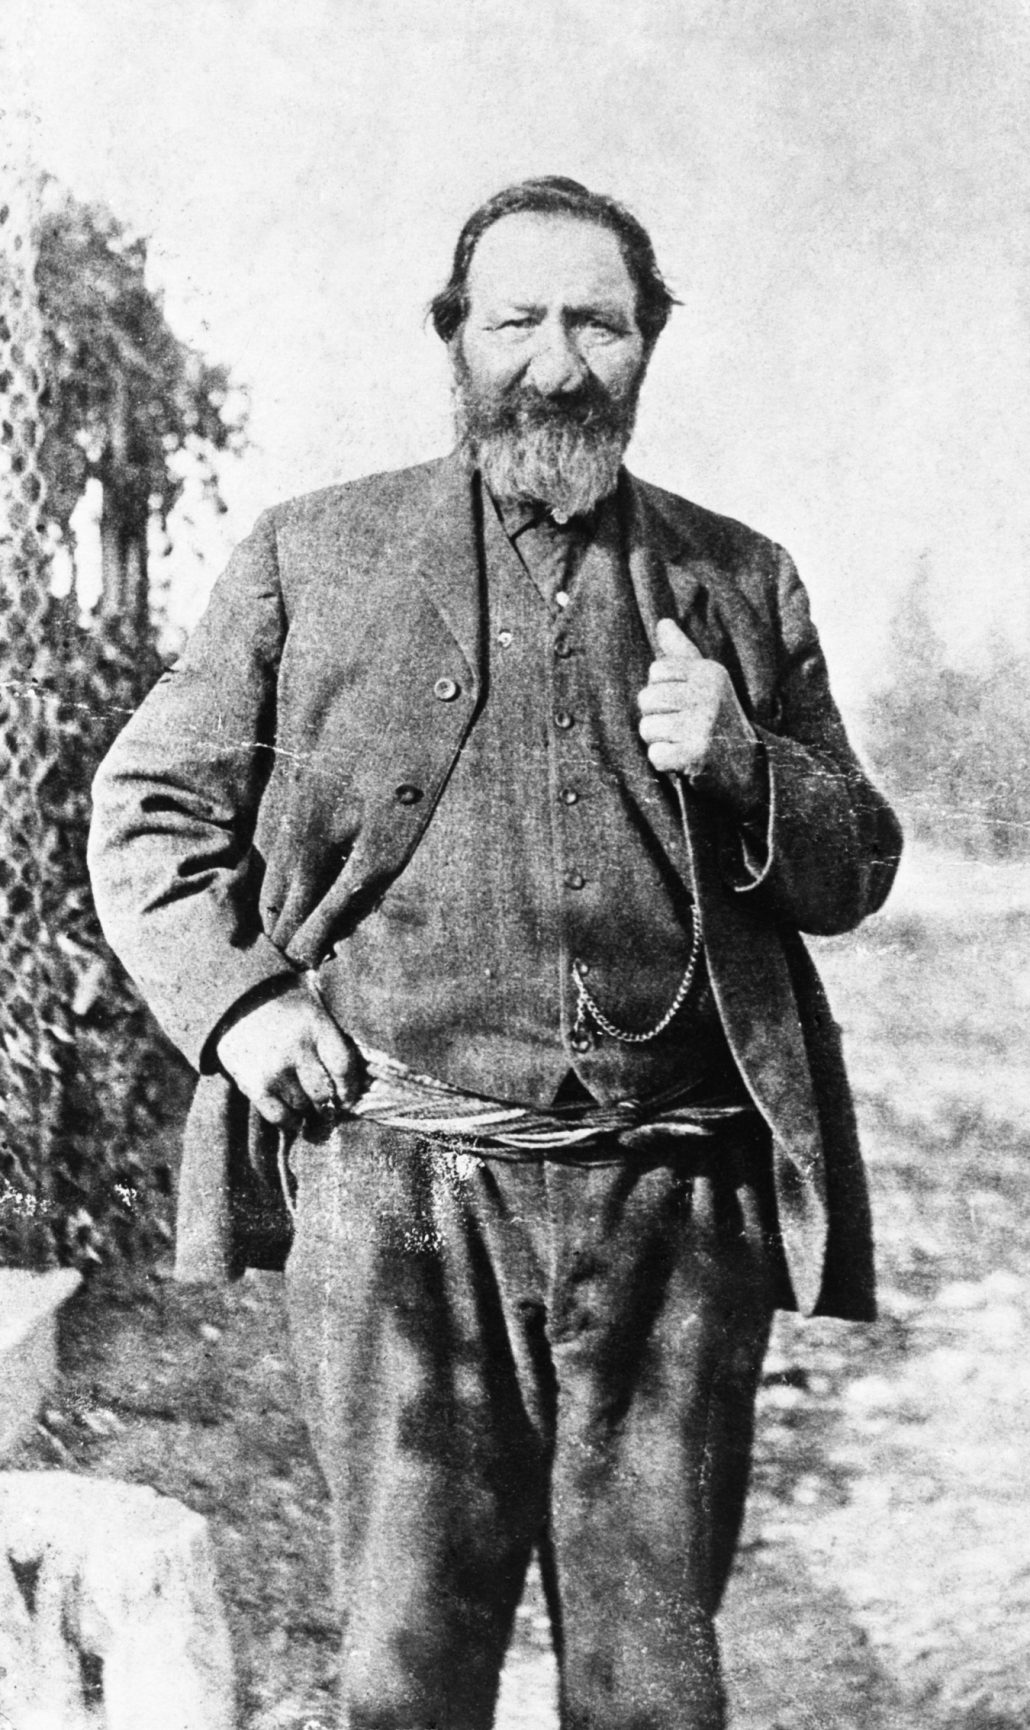 Peter Erasmus, Metis. Alberta c 1890. Born June 7th 1833 at Red River settlement, son of Danish father and Metis mother. Studied for Anglican ministry then acted as guide, interpreter, gold miner, hunter, and free trader. From 1908-1911 was Assistant Issuer on the Blackfoot reserve, southern Alberta. Died at Whitefish Lake, May 27, 1931. Image courtesy of the Glenbow Archives, na-3148-1.